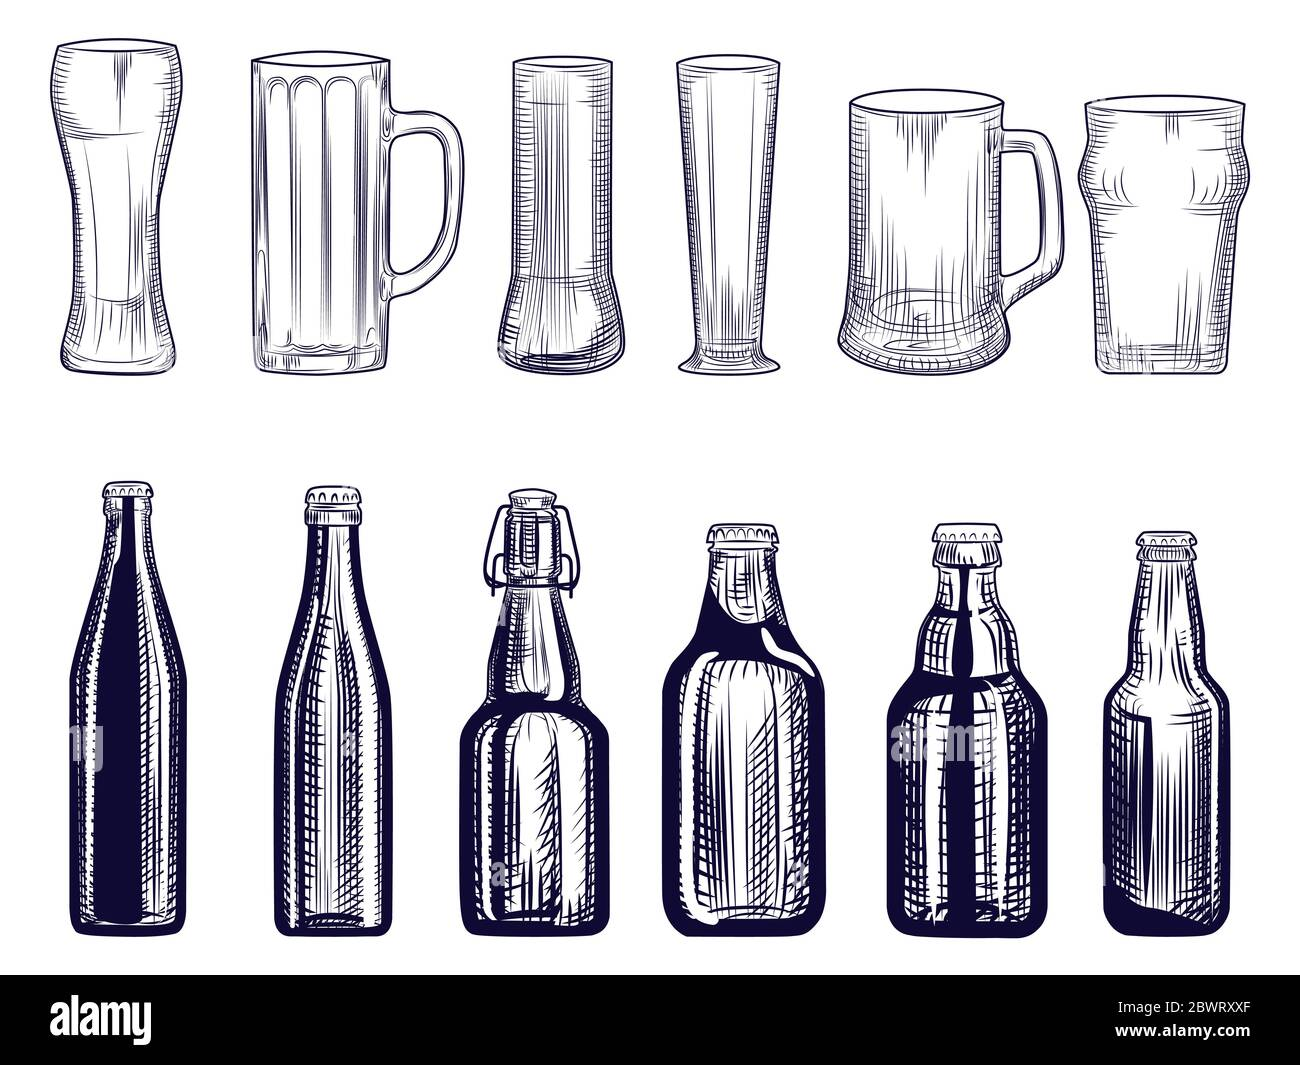 Set of beer bottles and mug. Different Beer glasses. Engraving style. Alcoholic beverage design. Hand drawn vector illustration isolated on white back Stock Vector